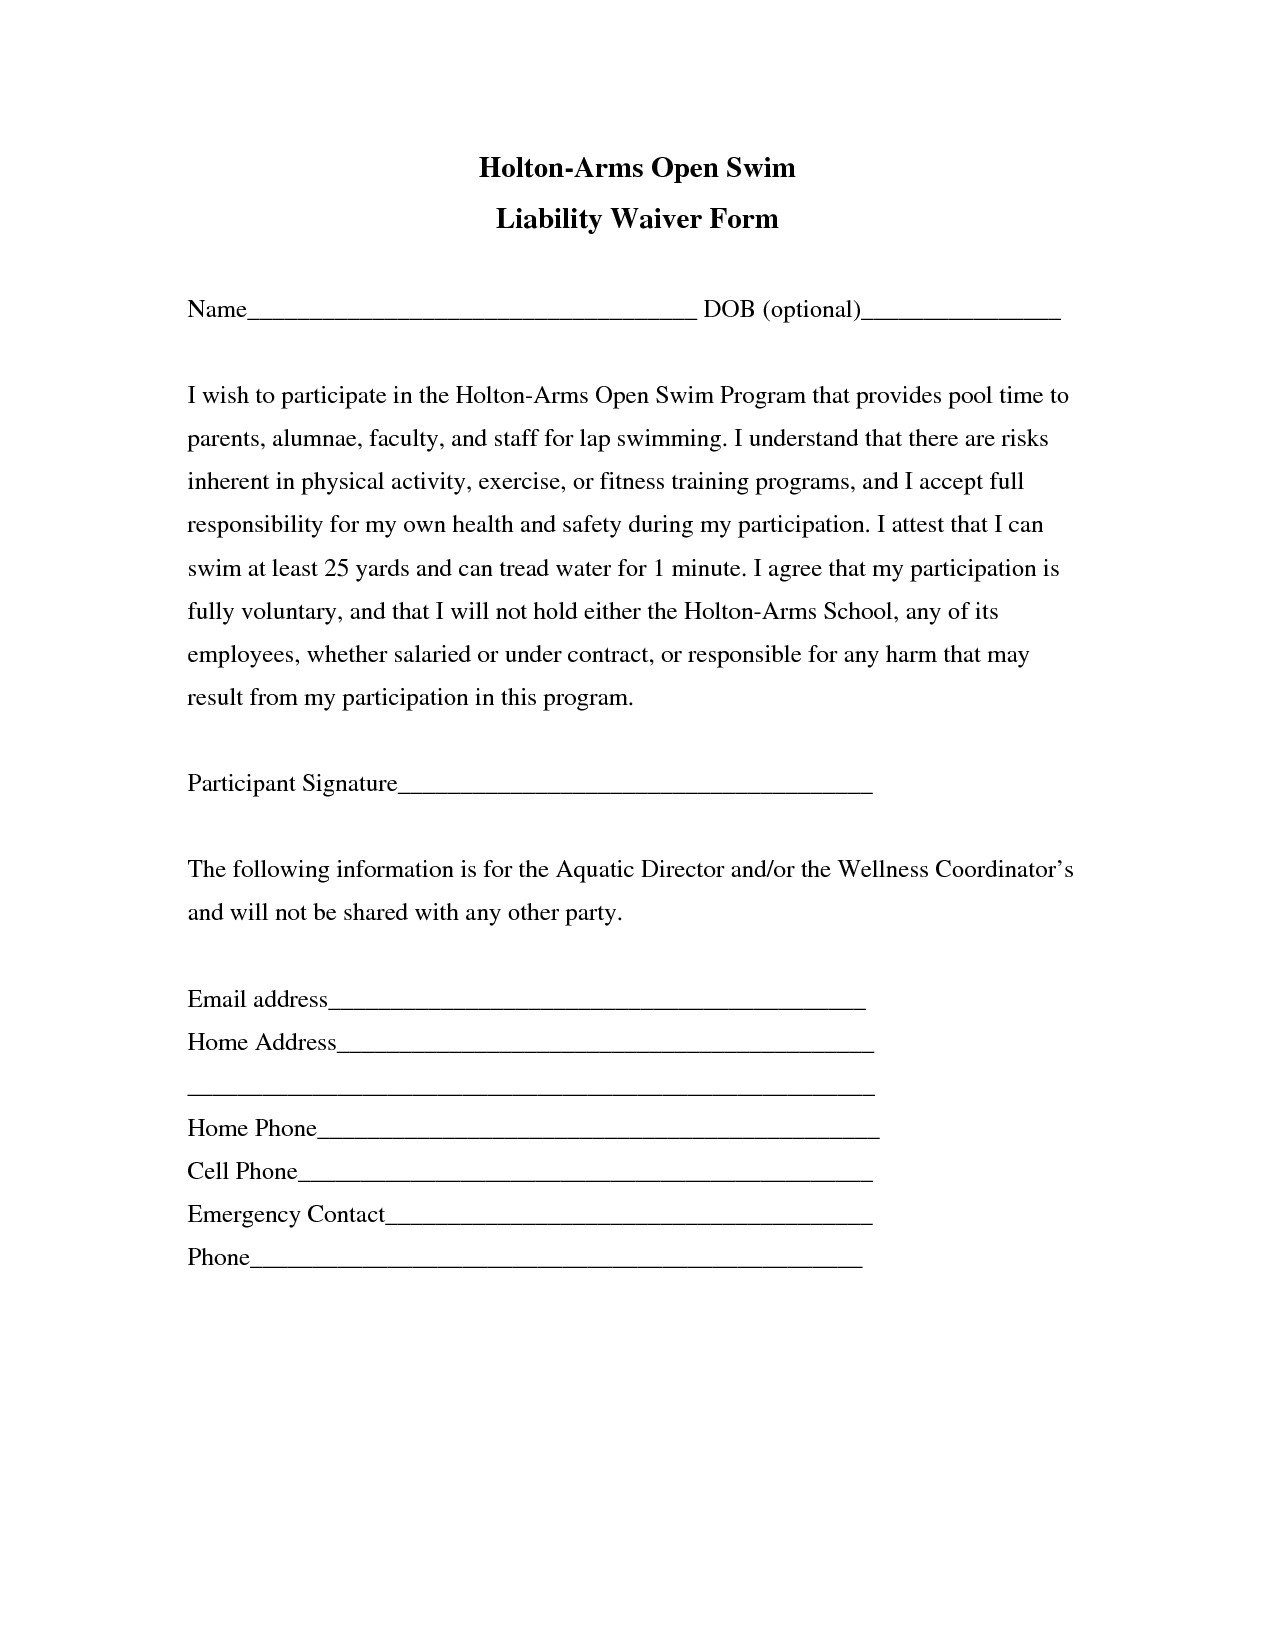 Free General Release form Template Liability Insurance Liability Insurance Waiver Template